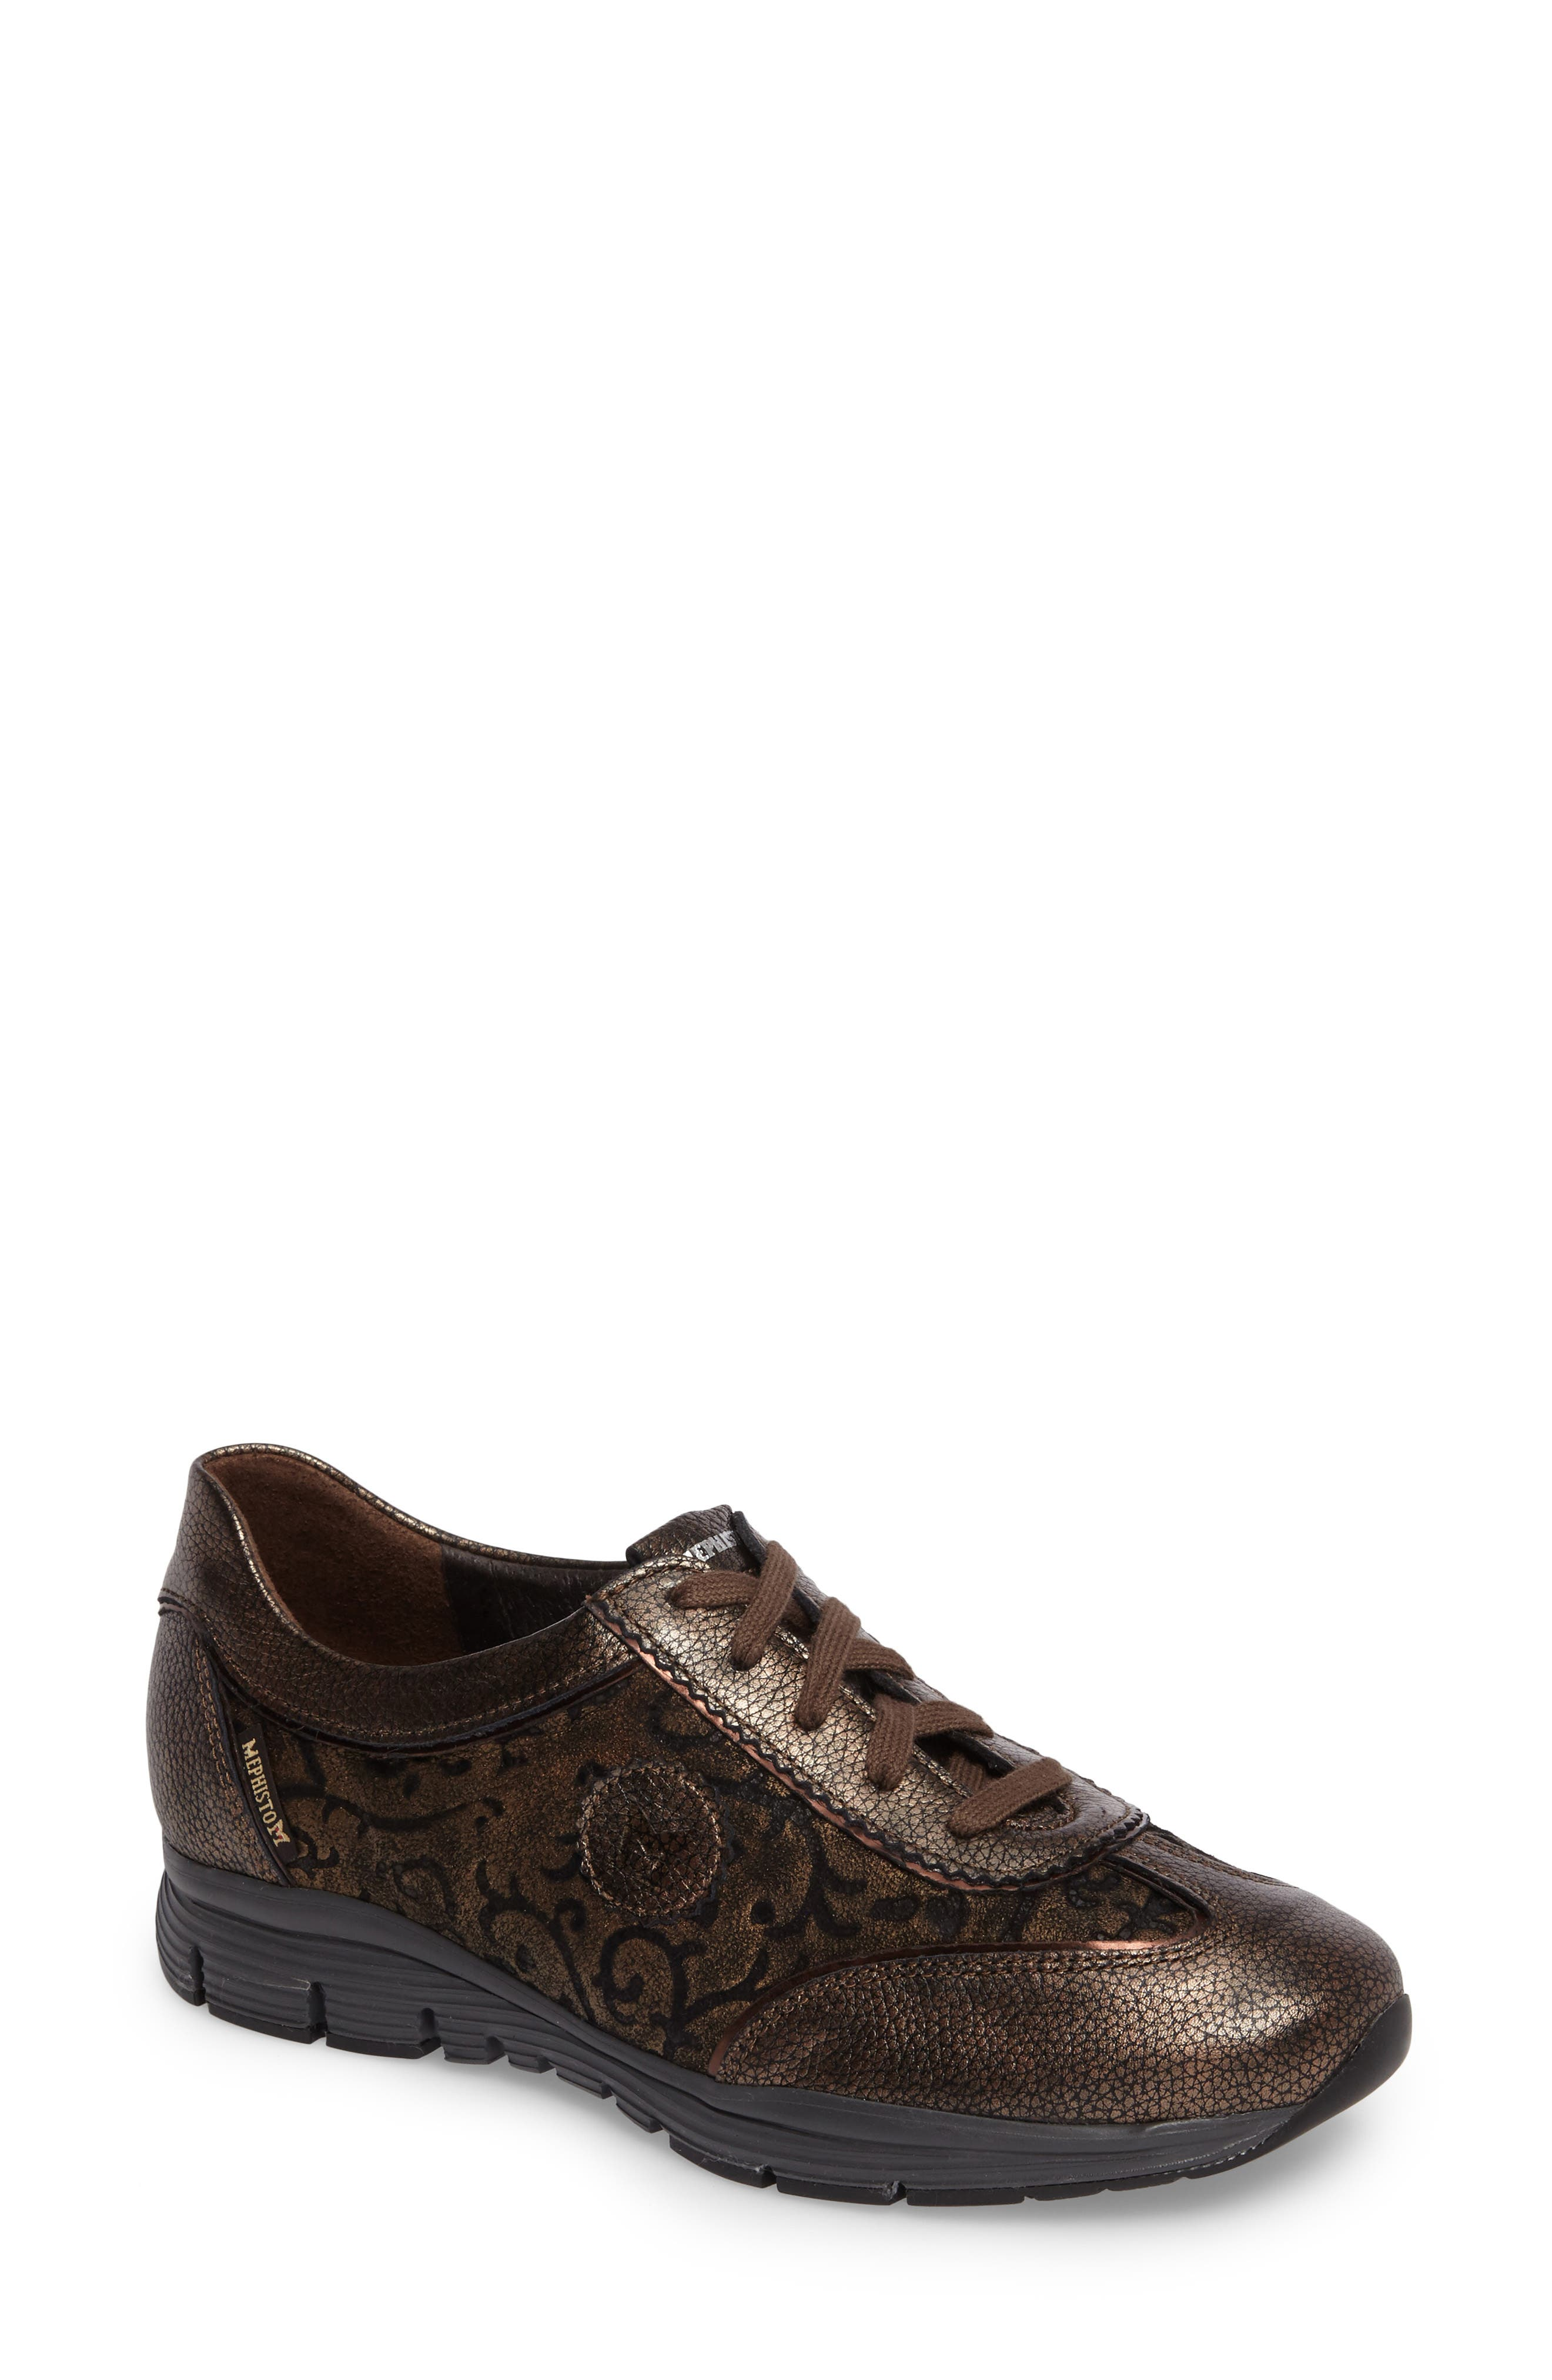 MEPHISTO, 'Yael' Soft-Air Sneaker, Main thumbnail 1, color, COPPER LEATHER